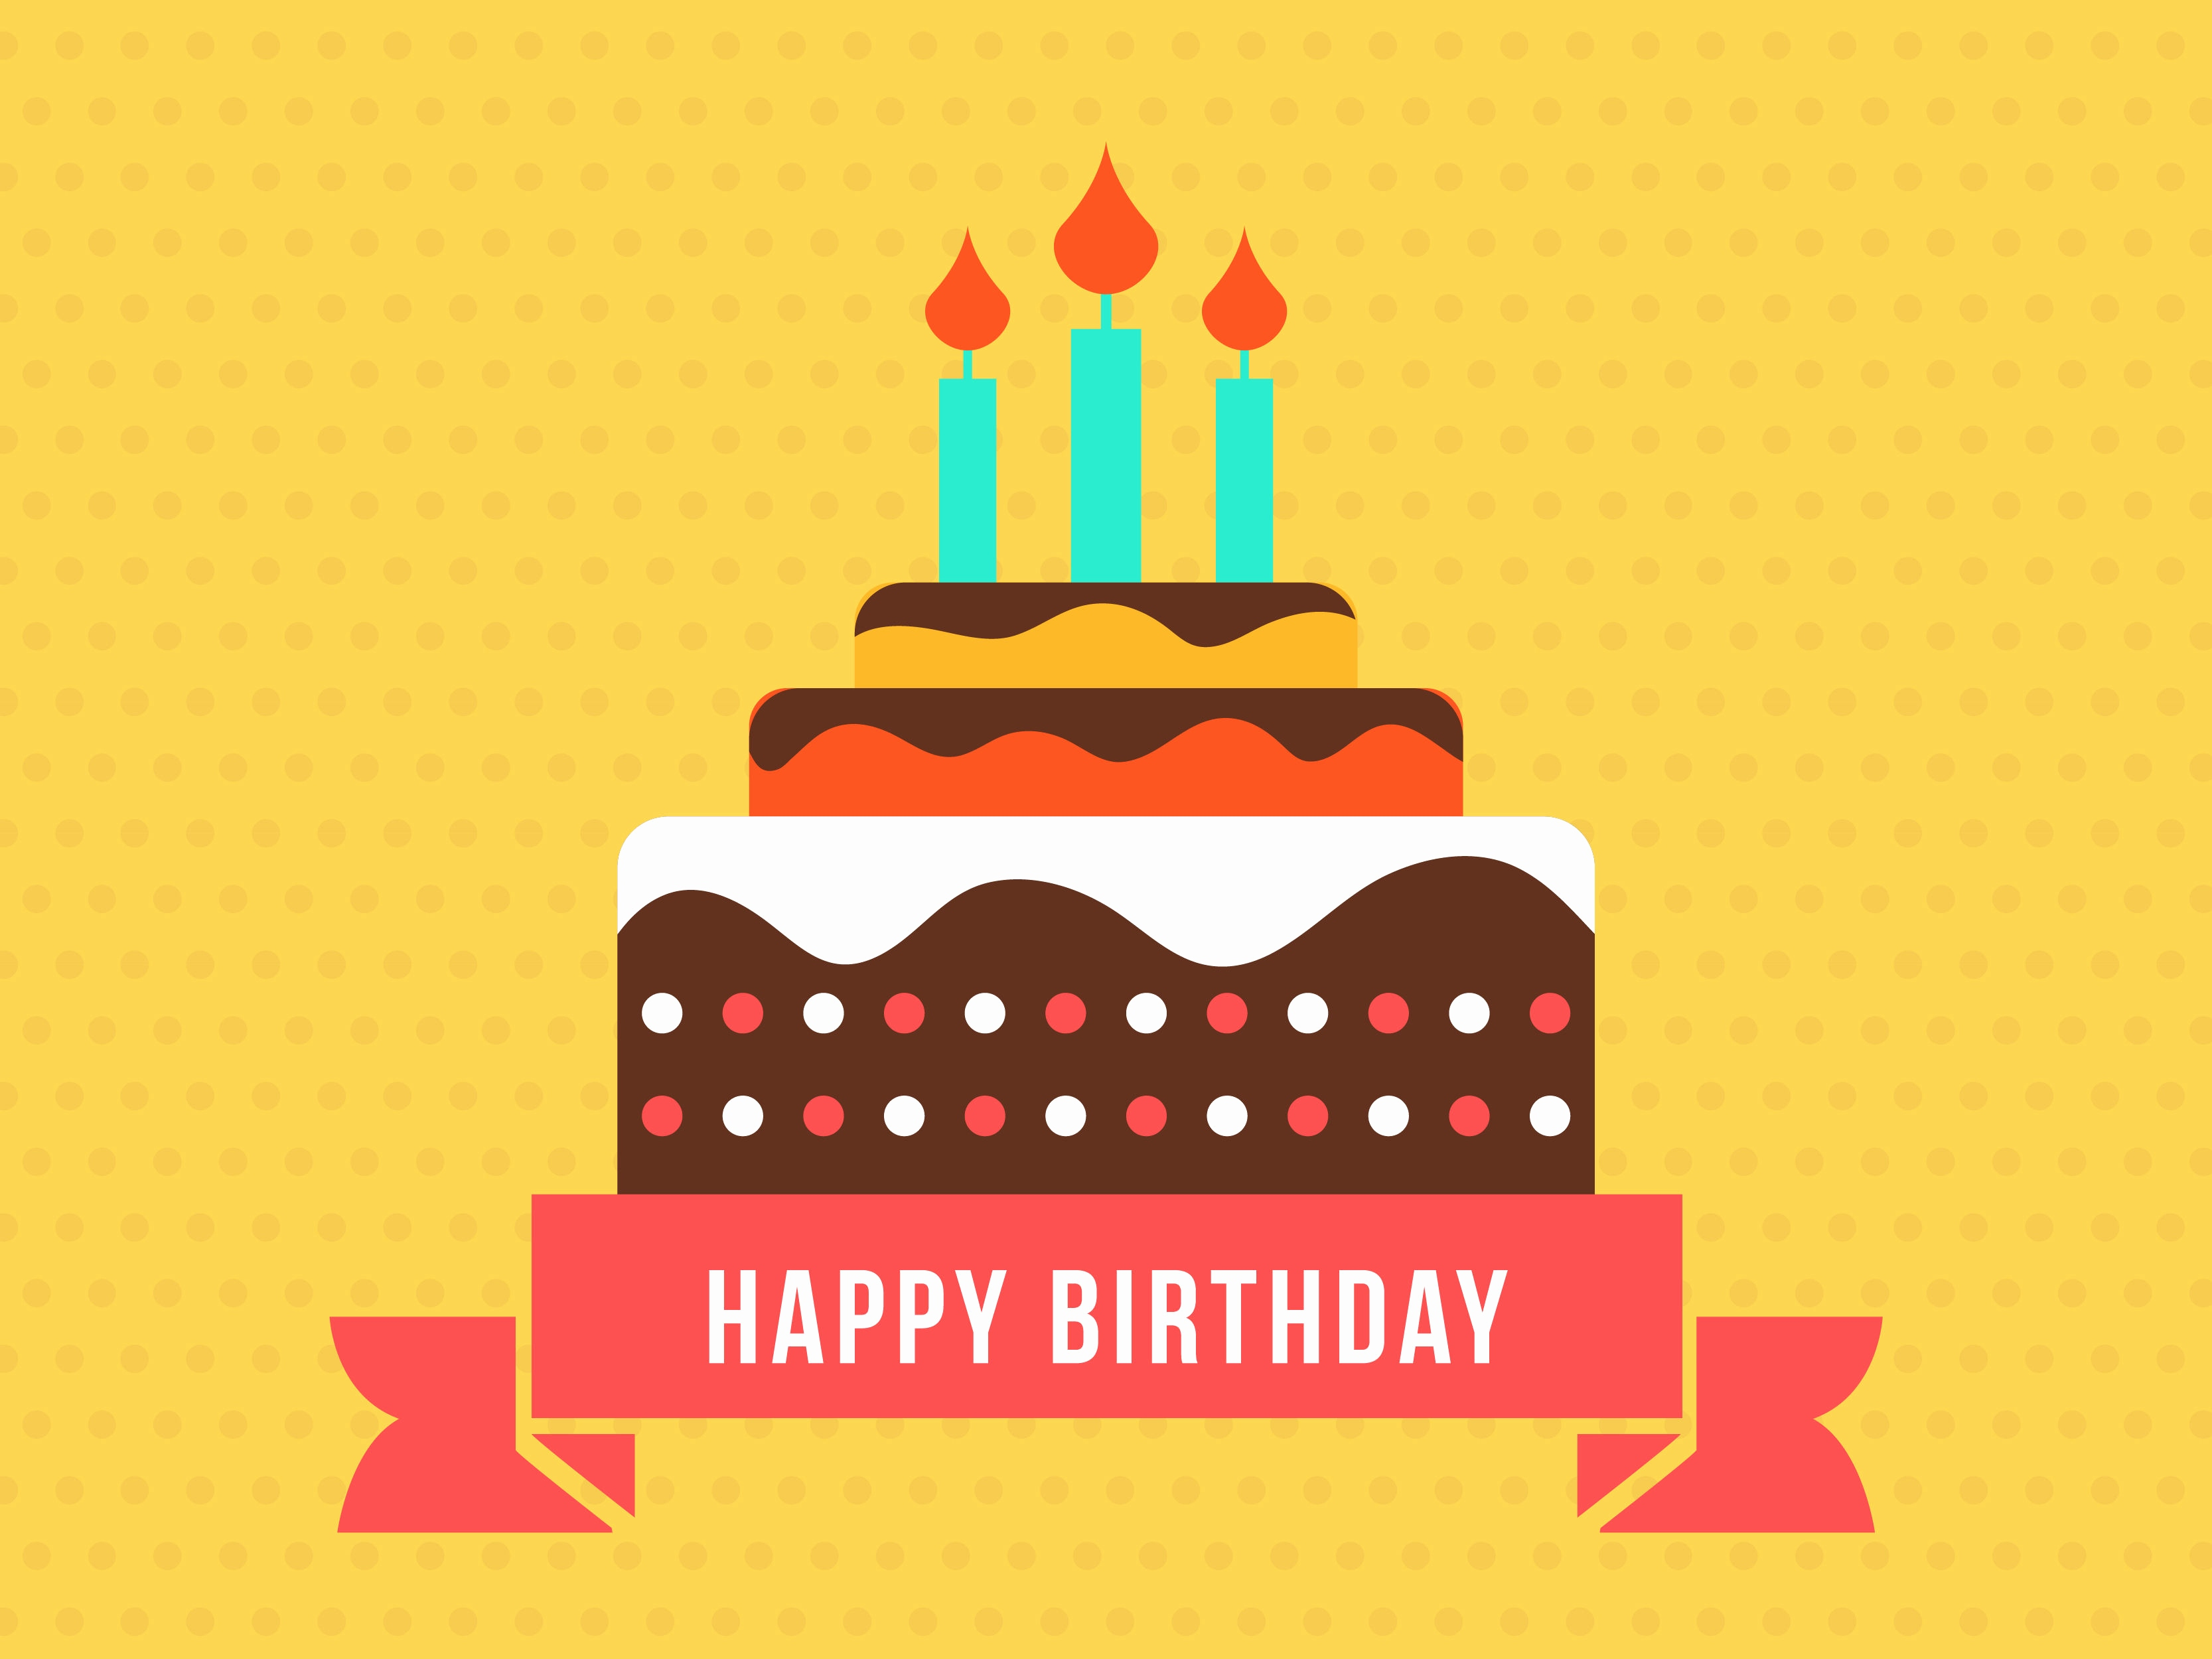 write name on birthday card online free ; write-name-on-birthday-card-online-free-fresh-happy-birthday-vector-amp-graphics-to-download-of-write-name-on-birthday-card-online-free